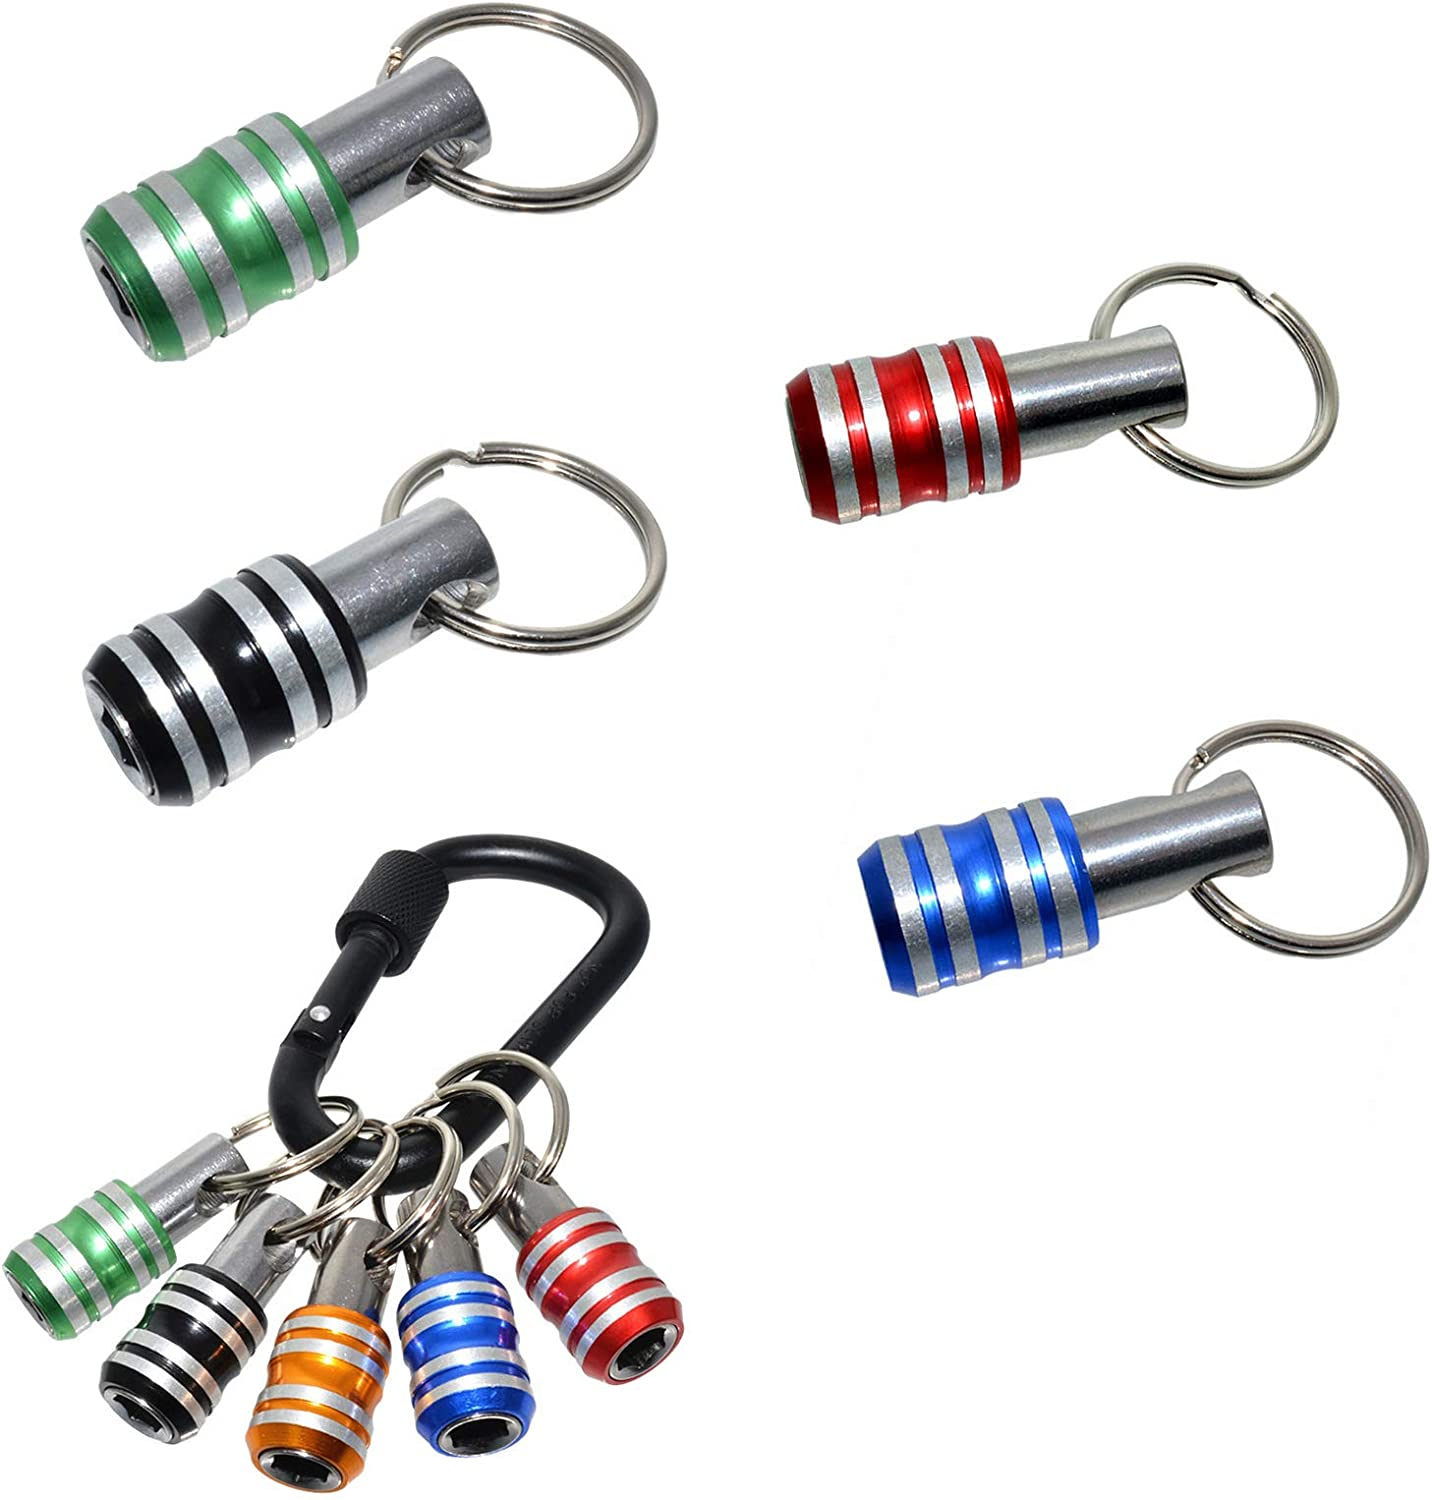 Famcry 1//4 Inch Hex Shank Screwdriver Bits Holder Extension Bar Drill Screw Adapter Quick Release Easy Change Keychain